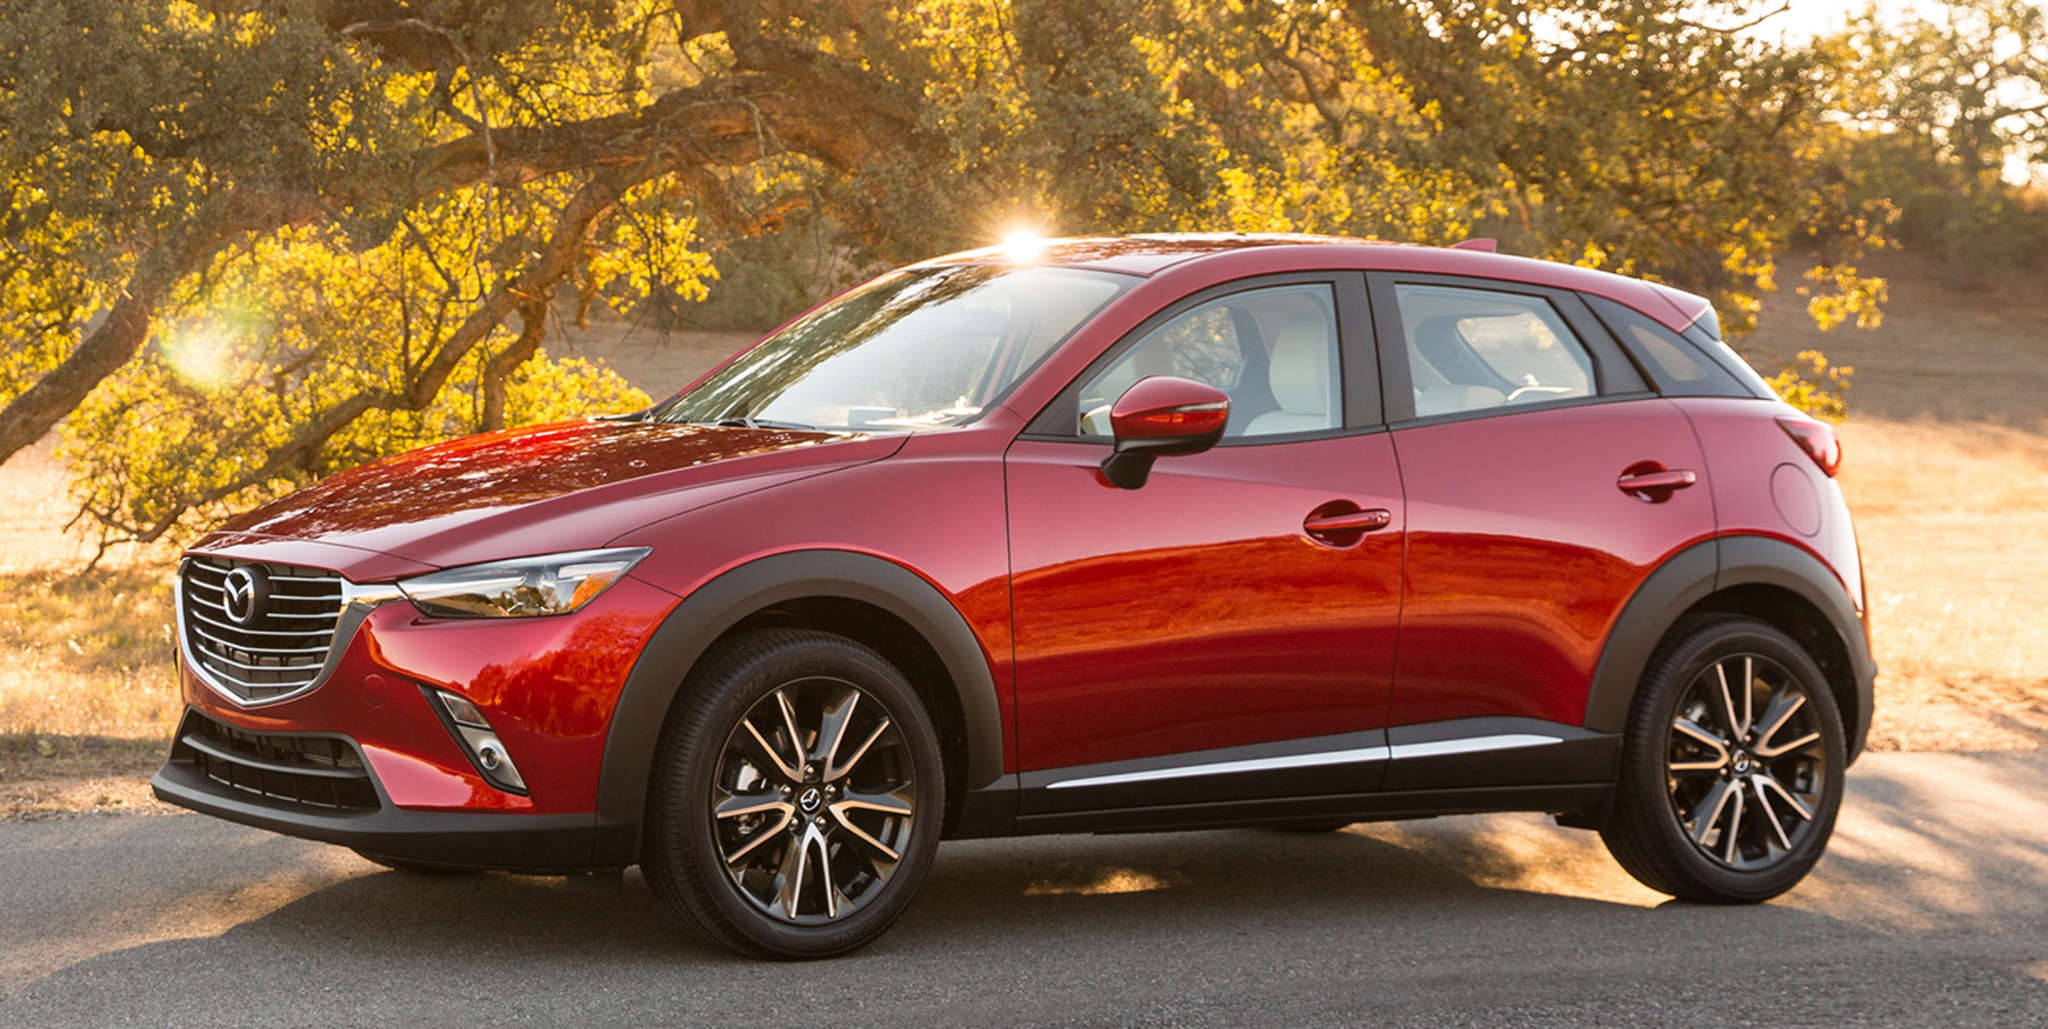 The 2016 Mazda CX-3 has adequate engine performance but too much body roll - the sport mode doesn´t seem to change the handling much - and cramped rear seats.